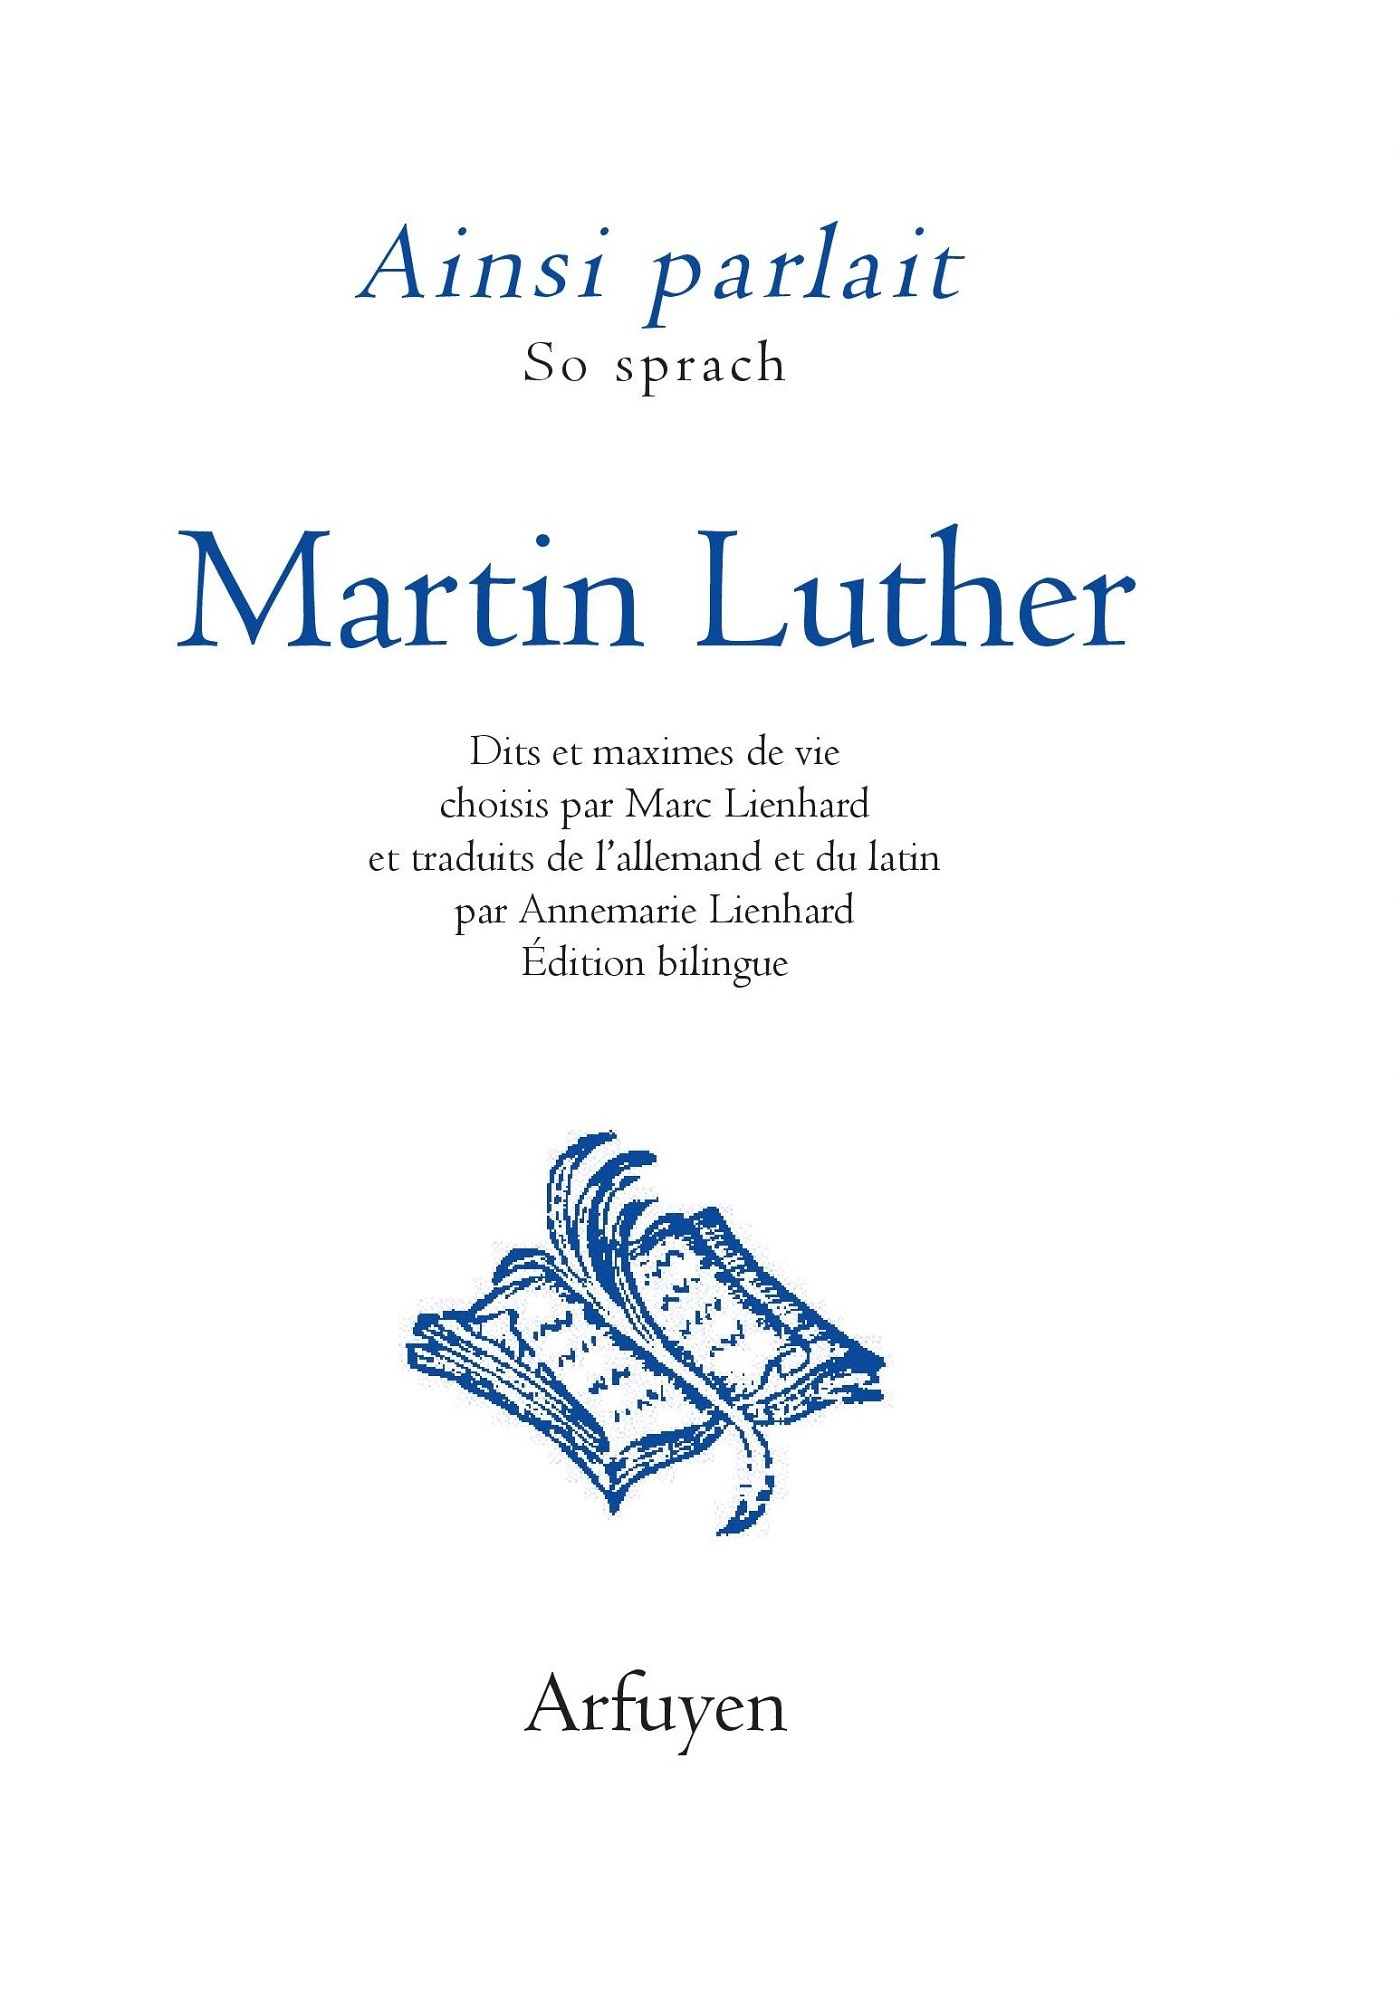 AINSI PARLAIT MARTIN LUTHER